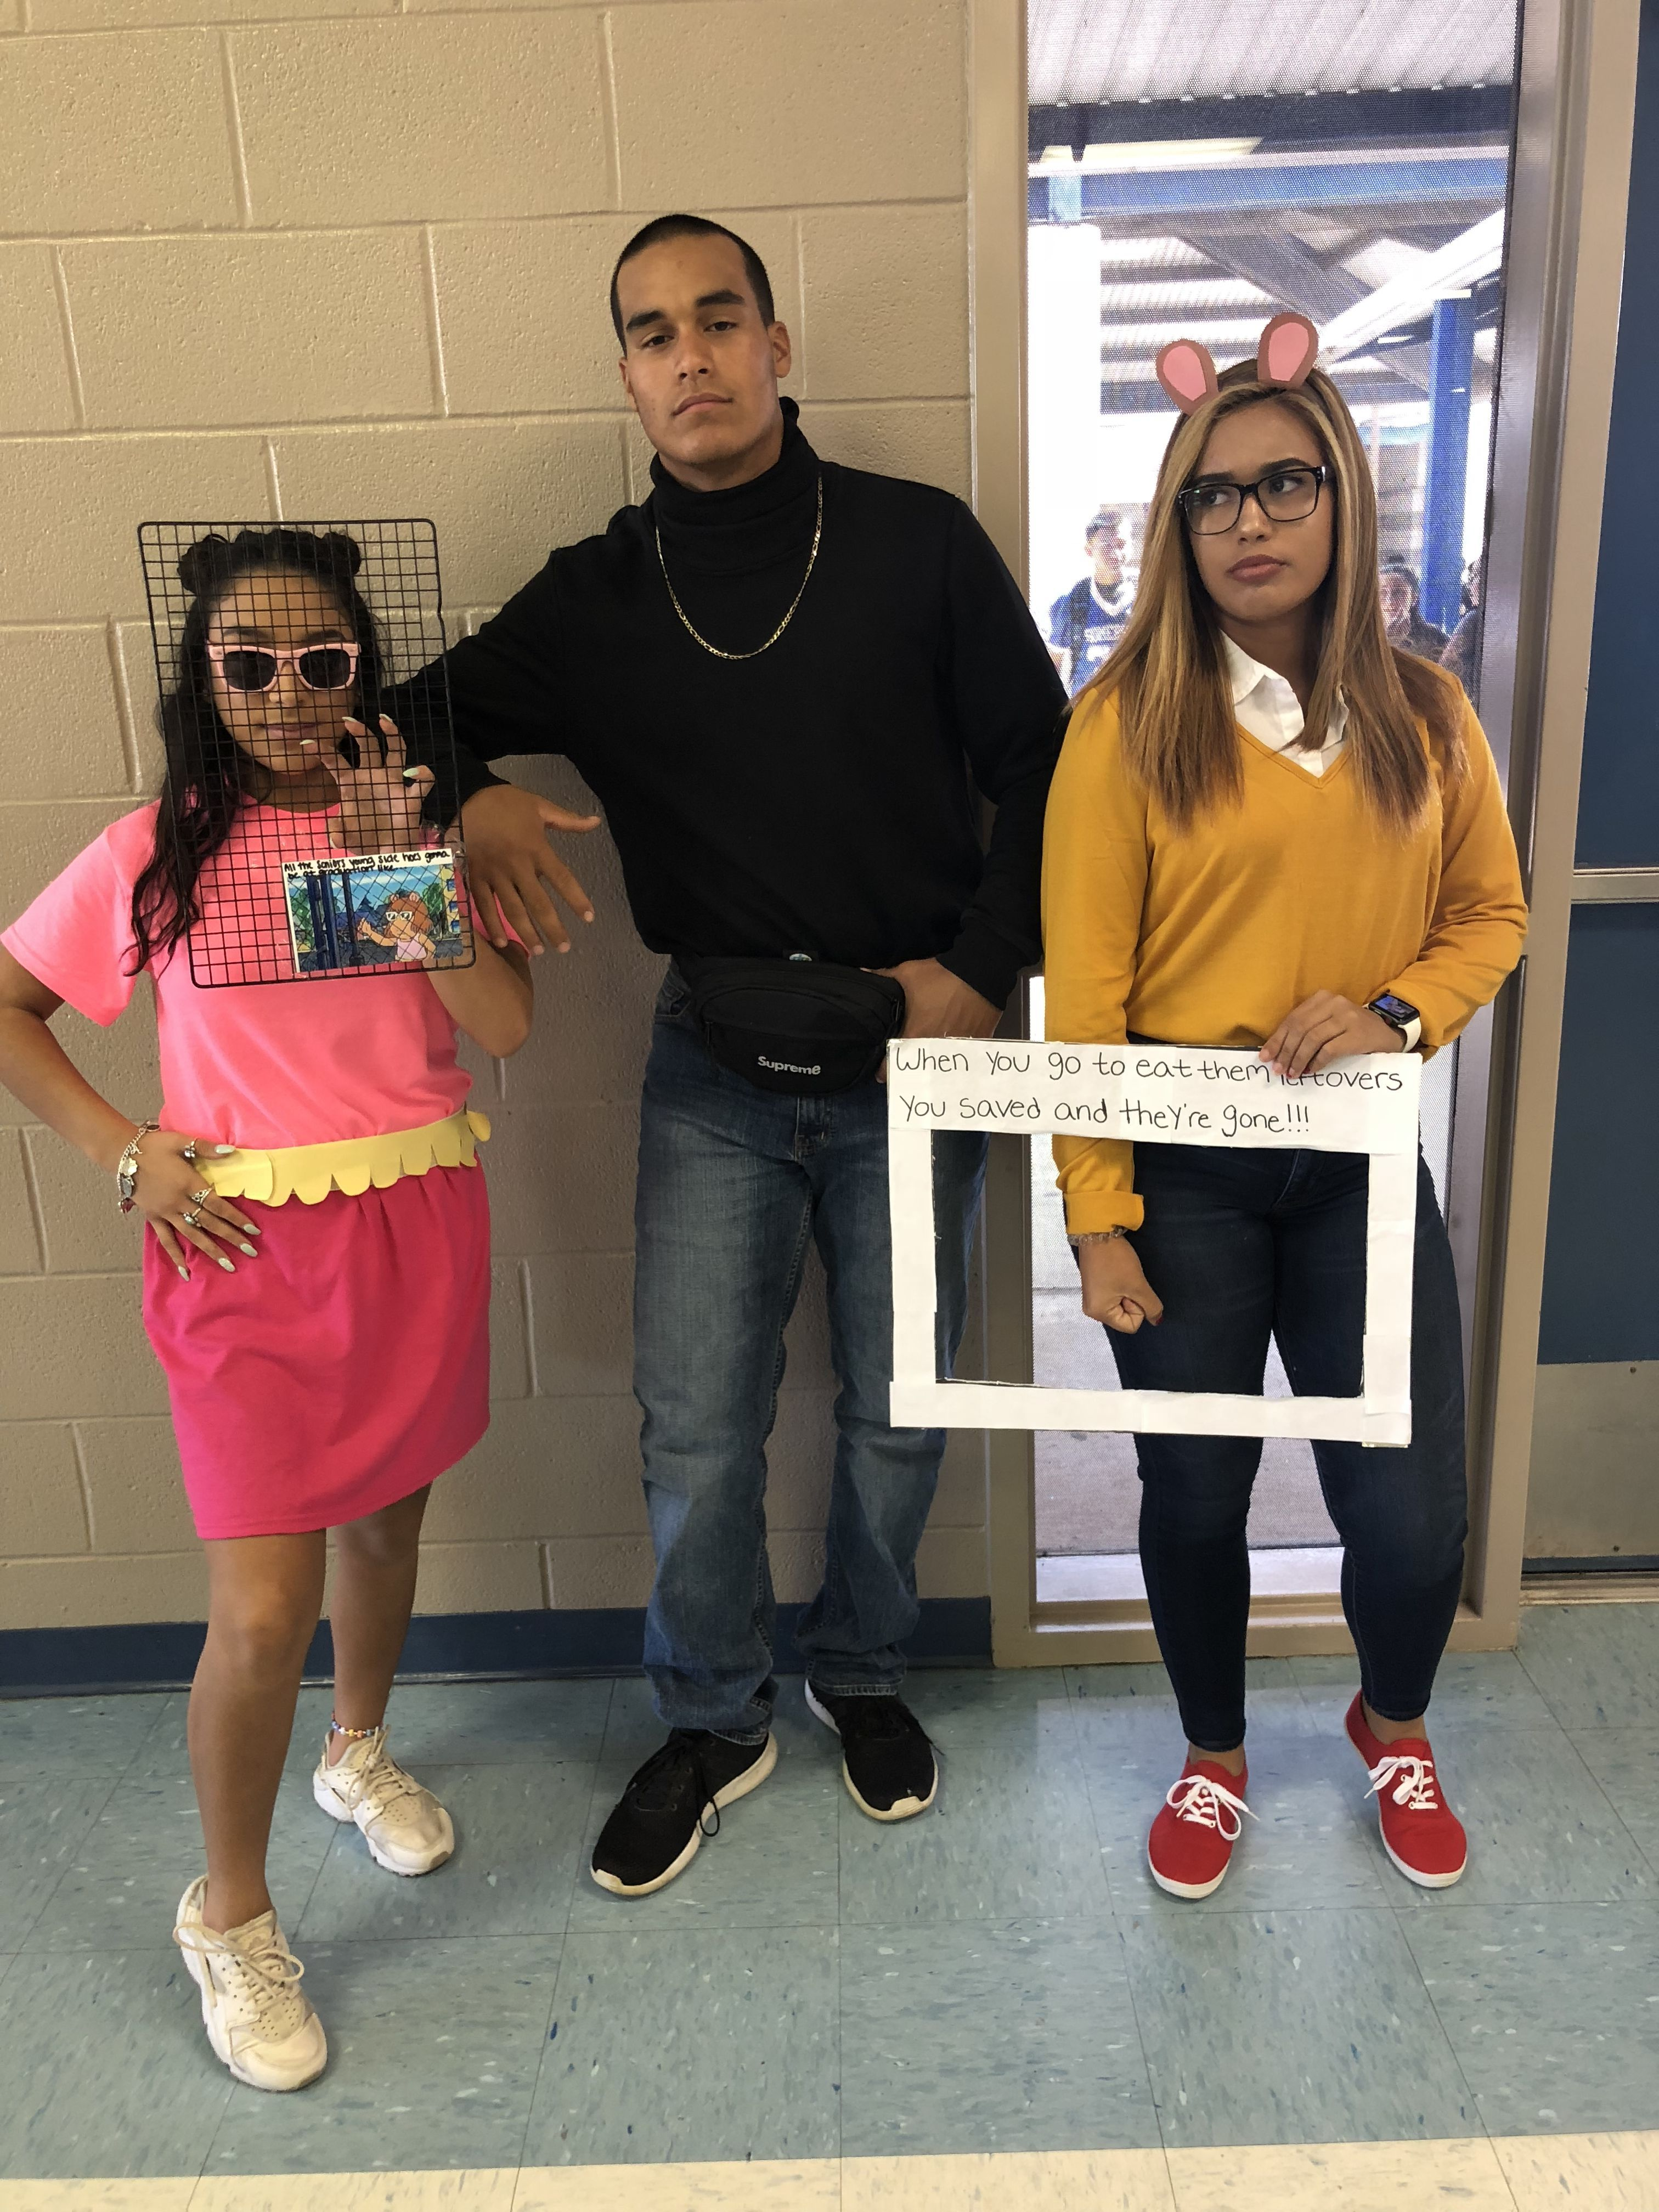 Meme Day Ideas For School 2018 Spirit Week Outfits Meme Costume Meme Day Costumes